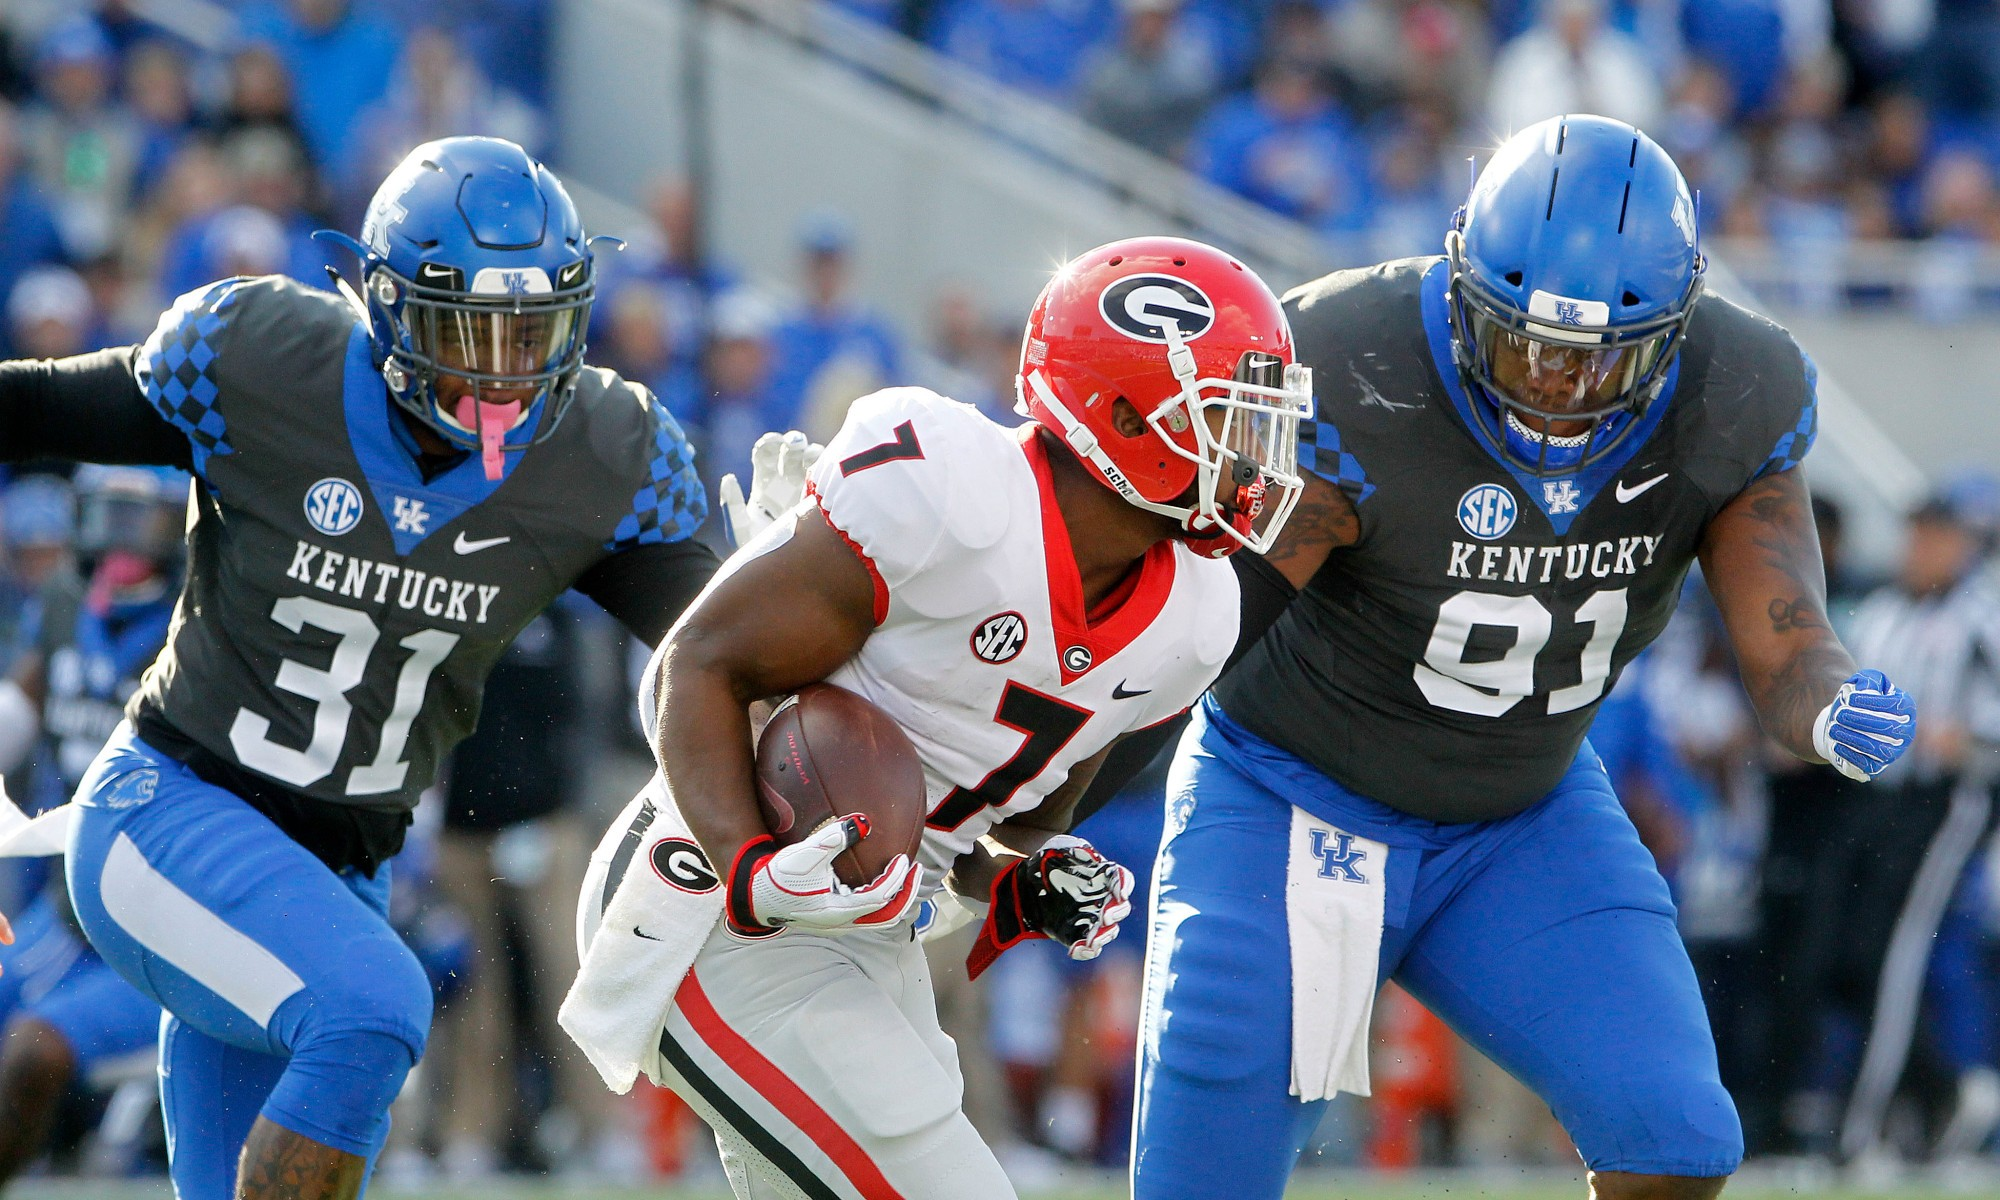 Kickoff time officially announced for Georgia-Kentucky game